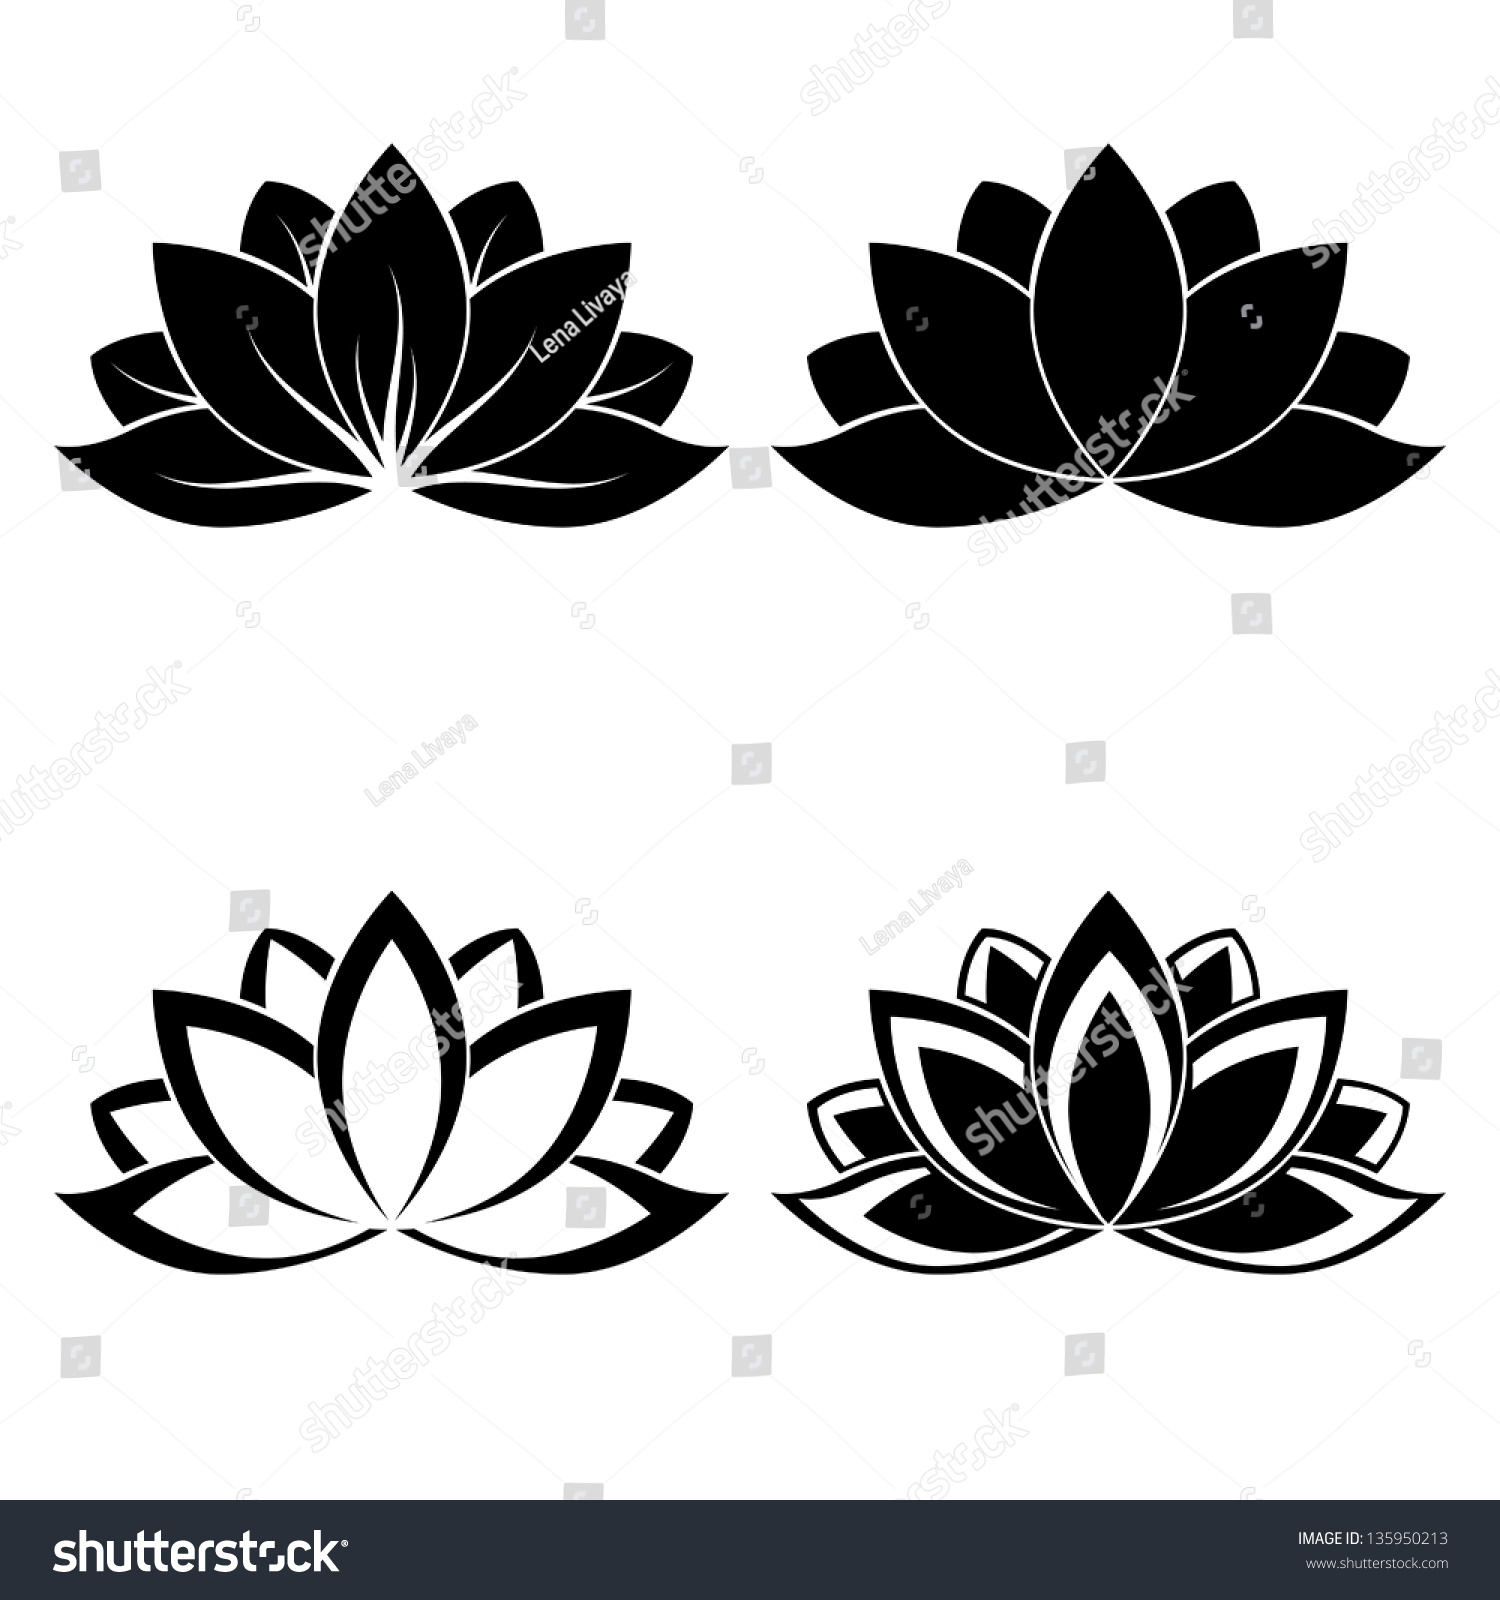 Yoga pattern background seamless pattern with five petals lotus flower - Four Lotus Silhouettes For Design Vector